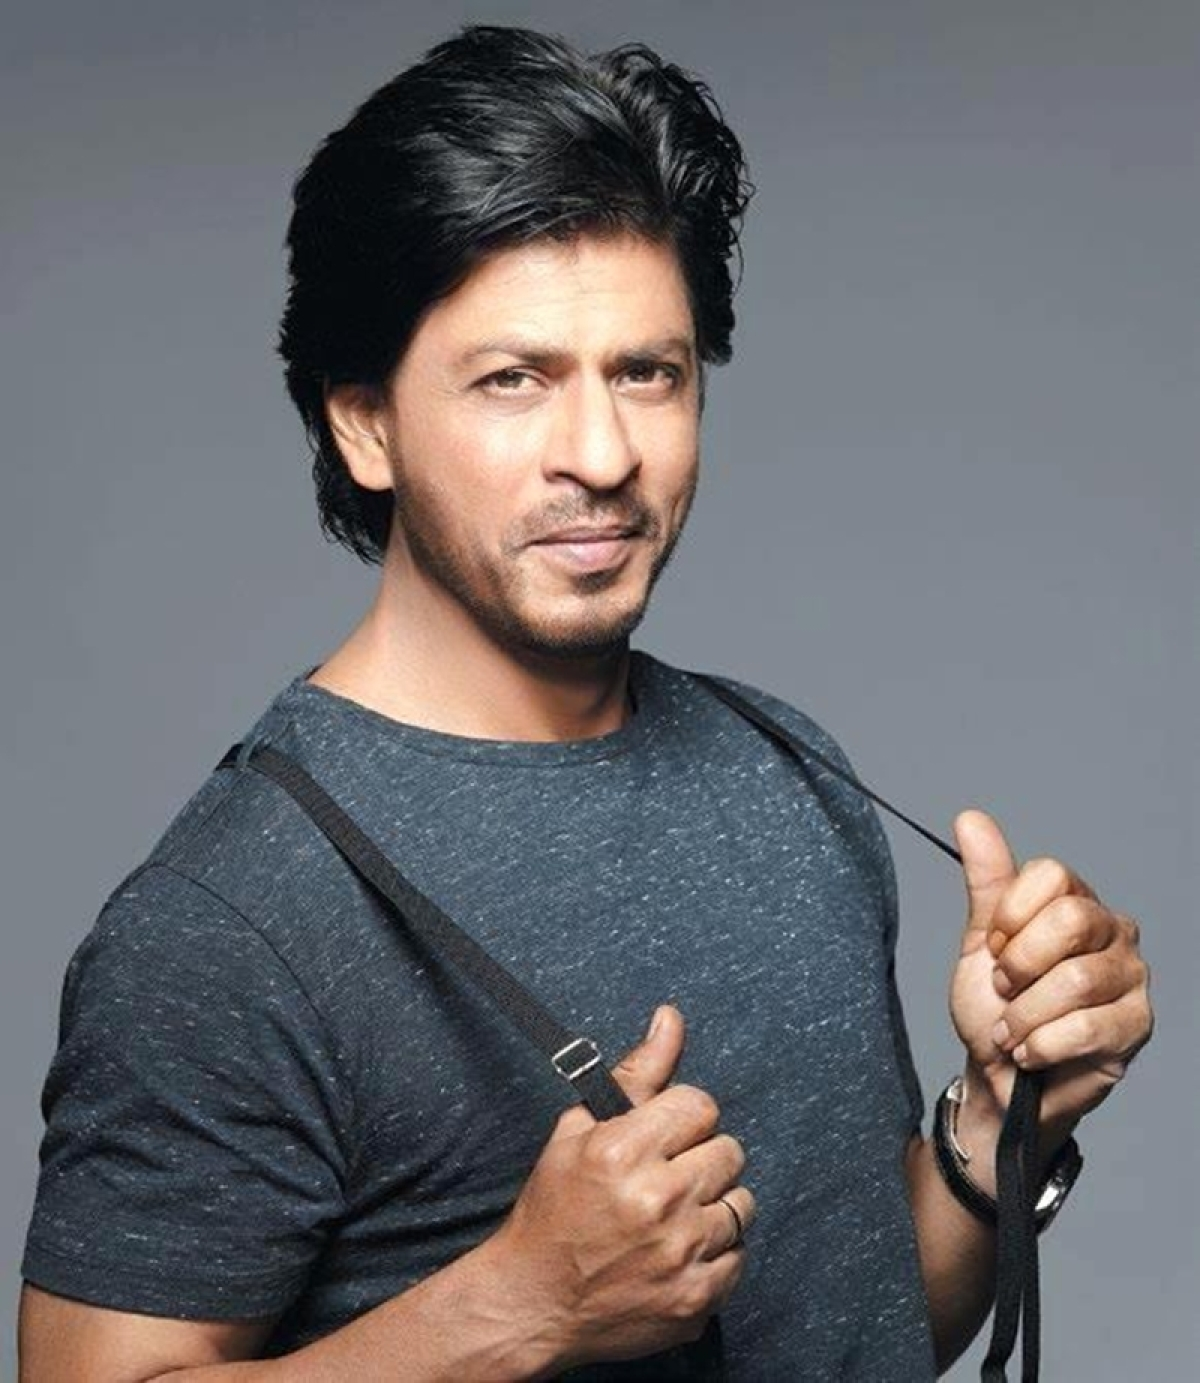 This is what Shah Rukh Khan does when he gets stuck in traffic